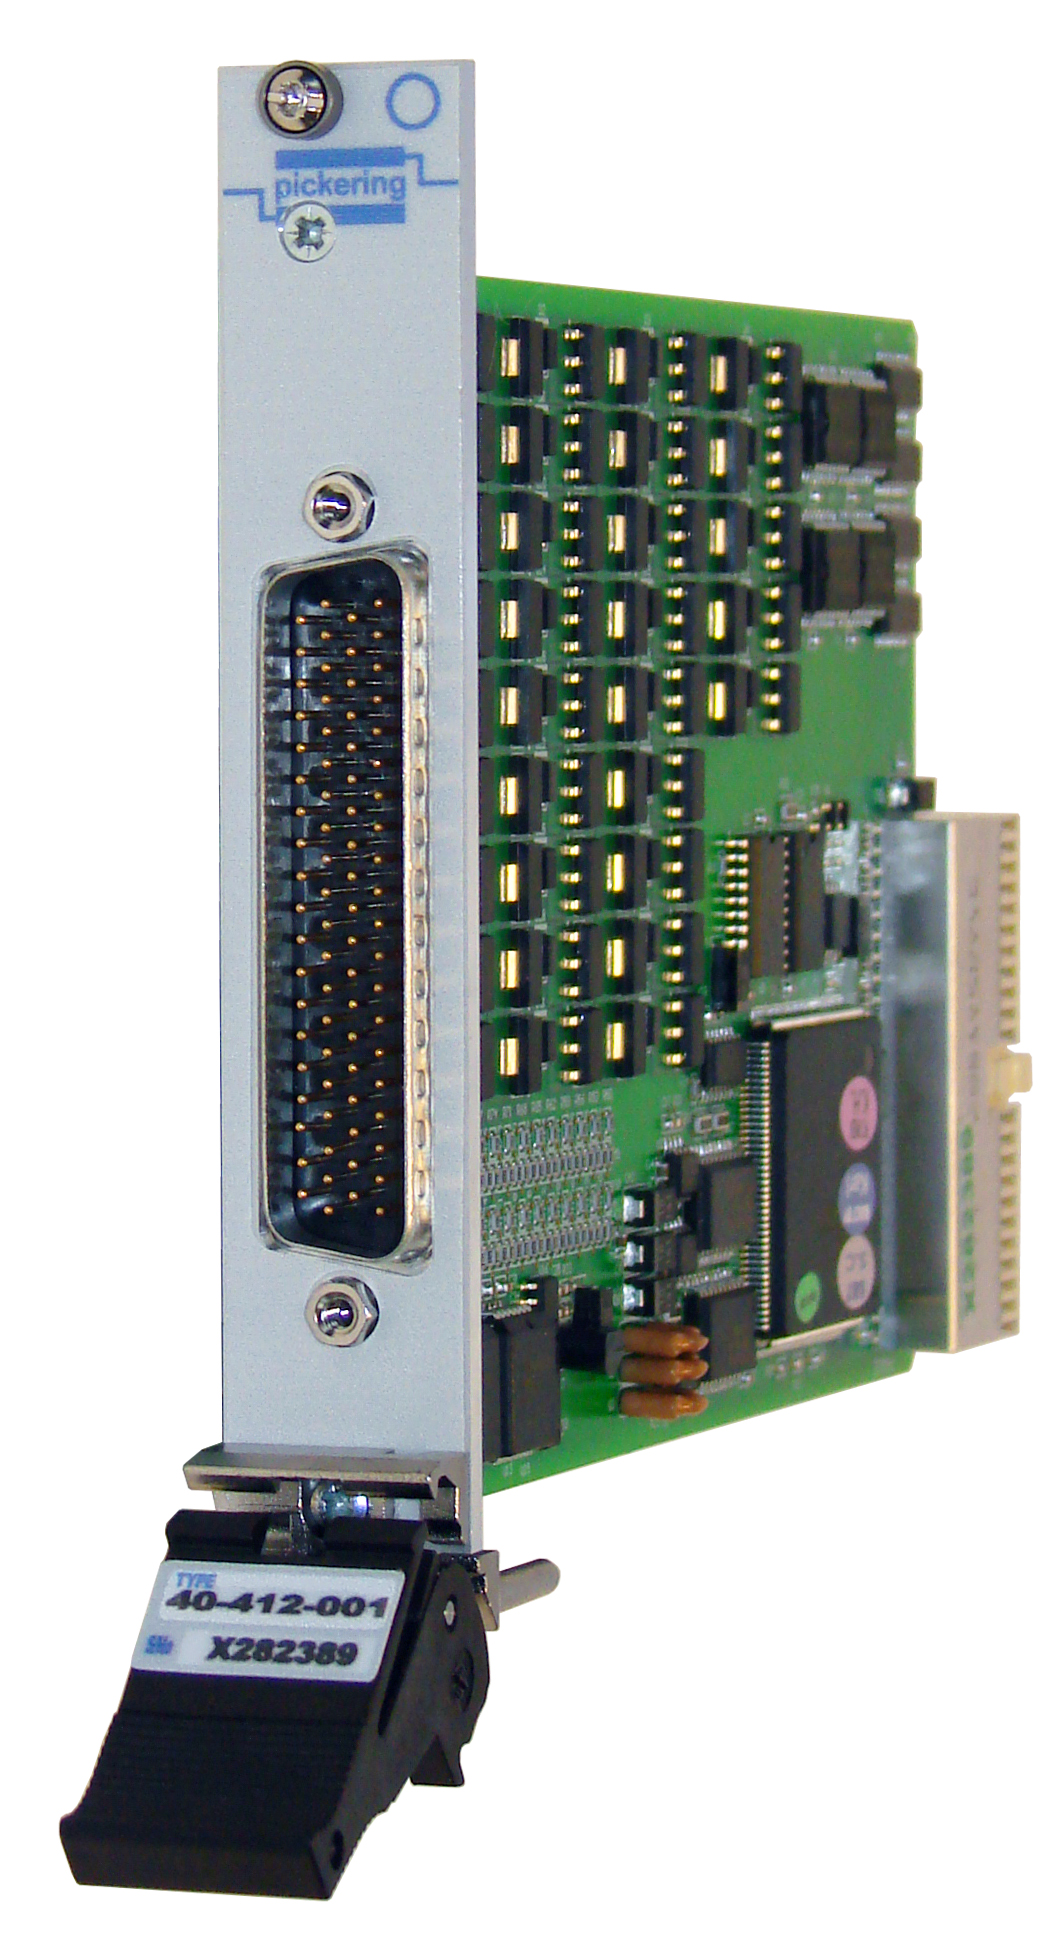 Front panel of PXI card 40-412